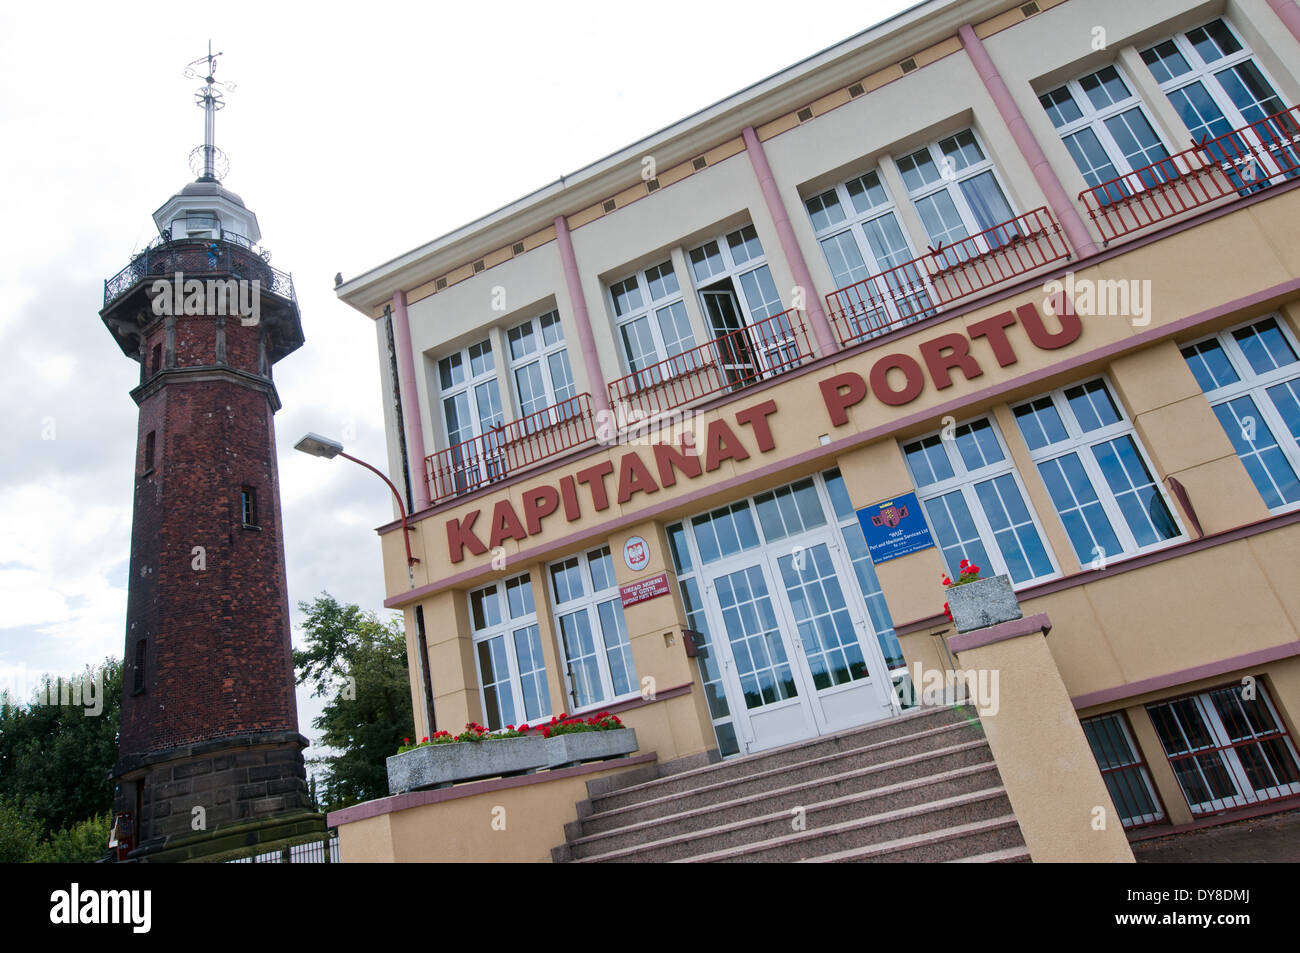 harbourmaster office and lighthouse in Baltic Sea harbour in Gdansk, Poland - Stock Image